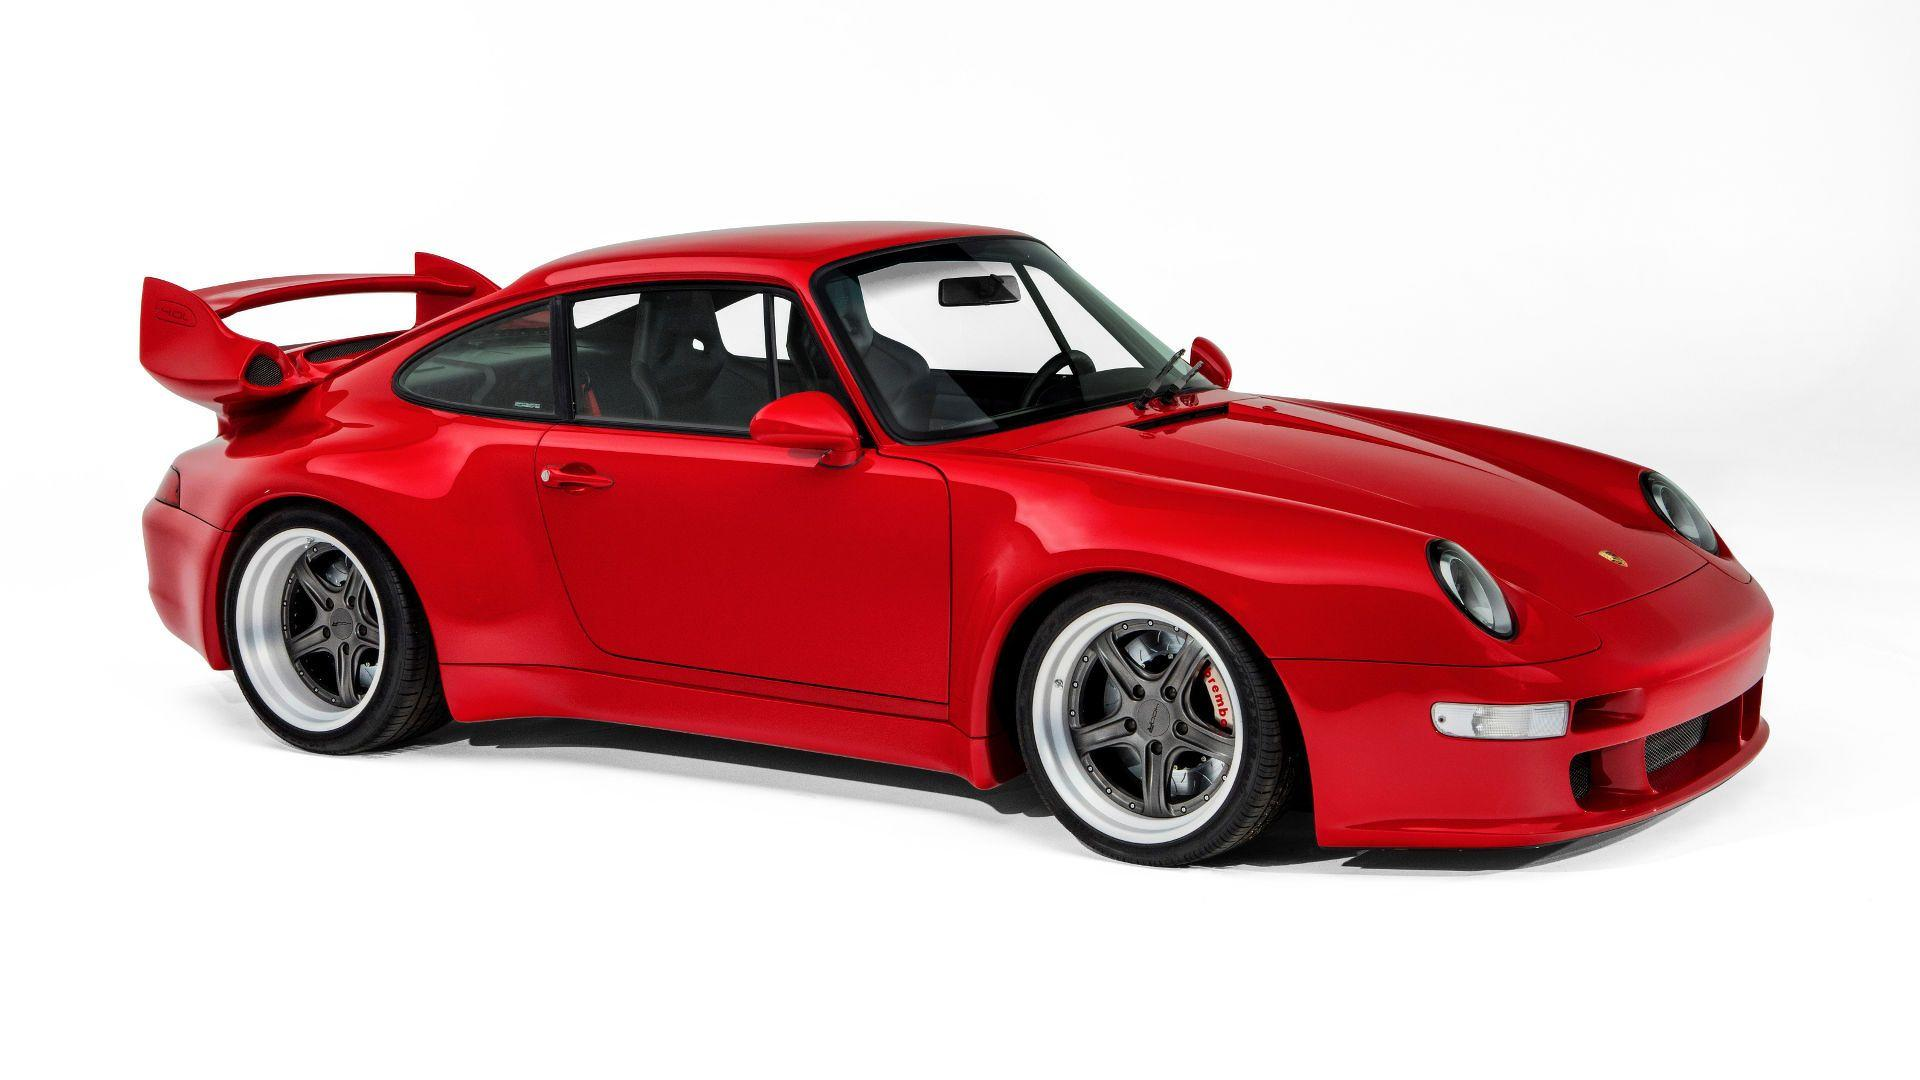 guntherwerks-400r-porsche-911.jpg